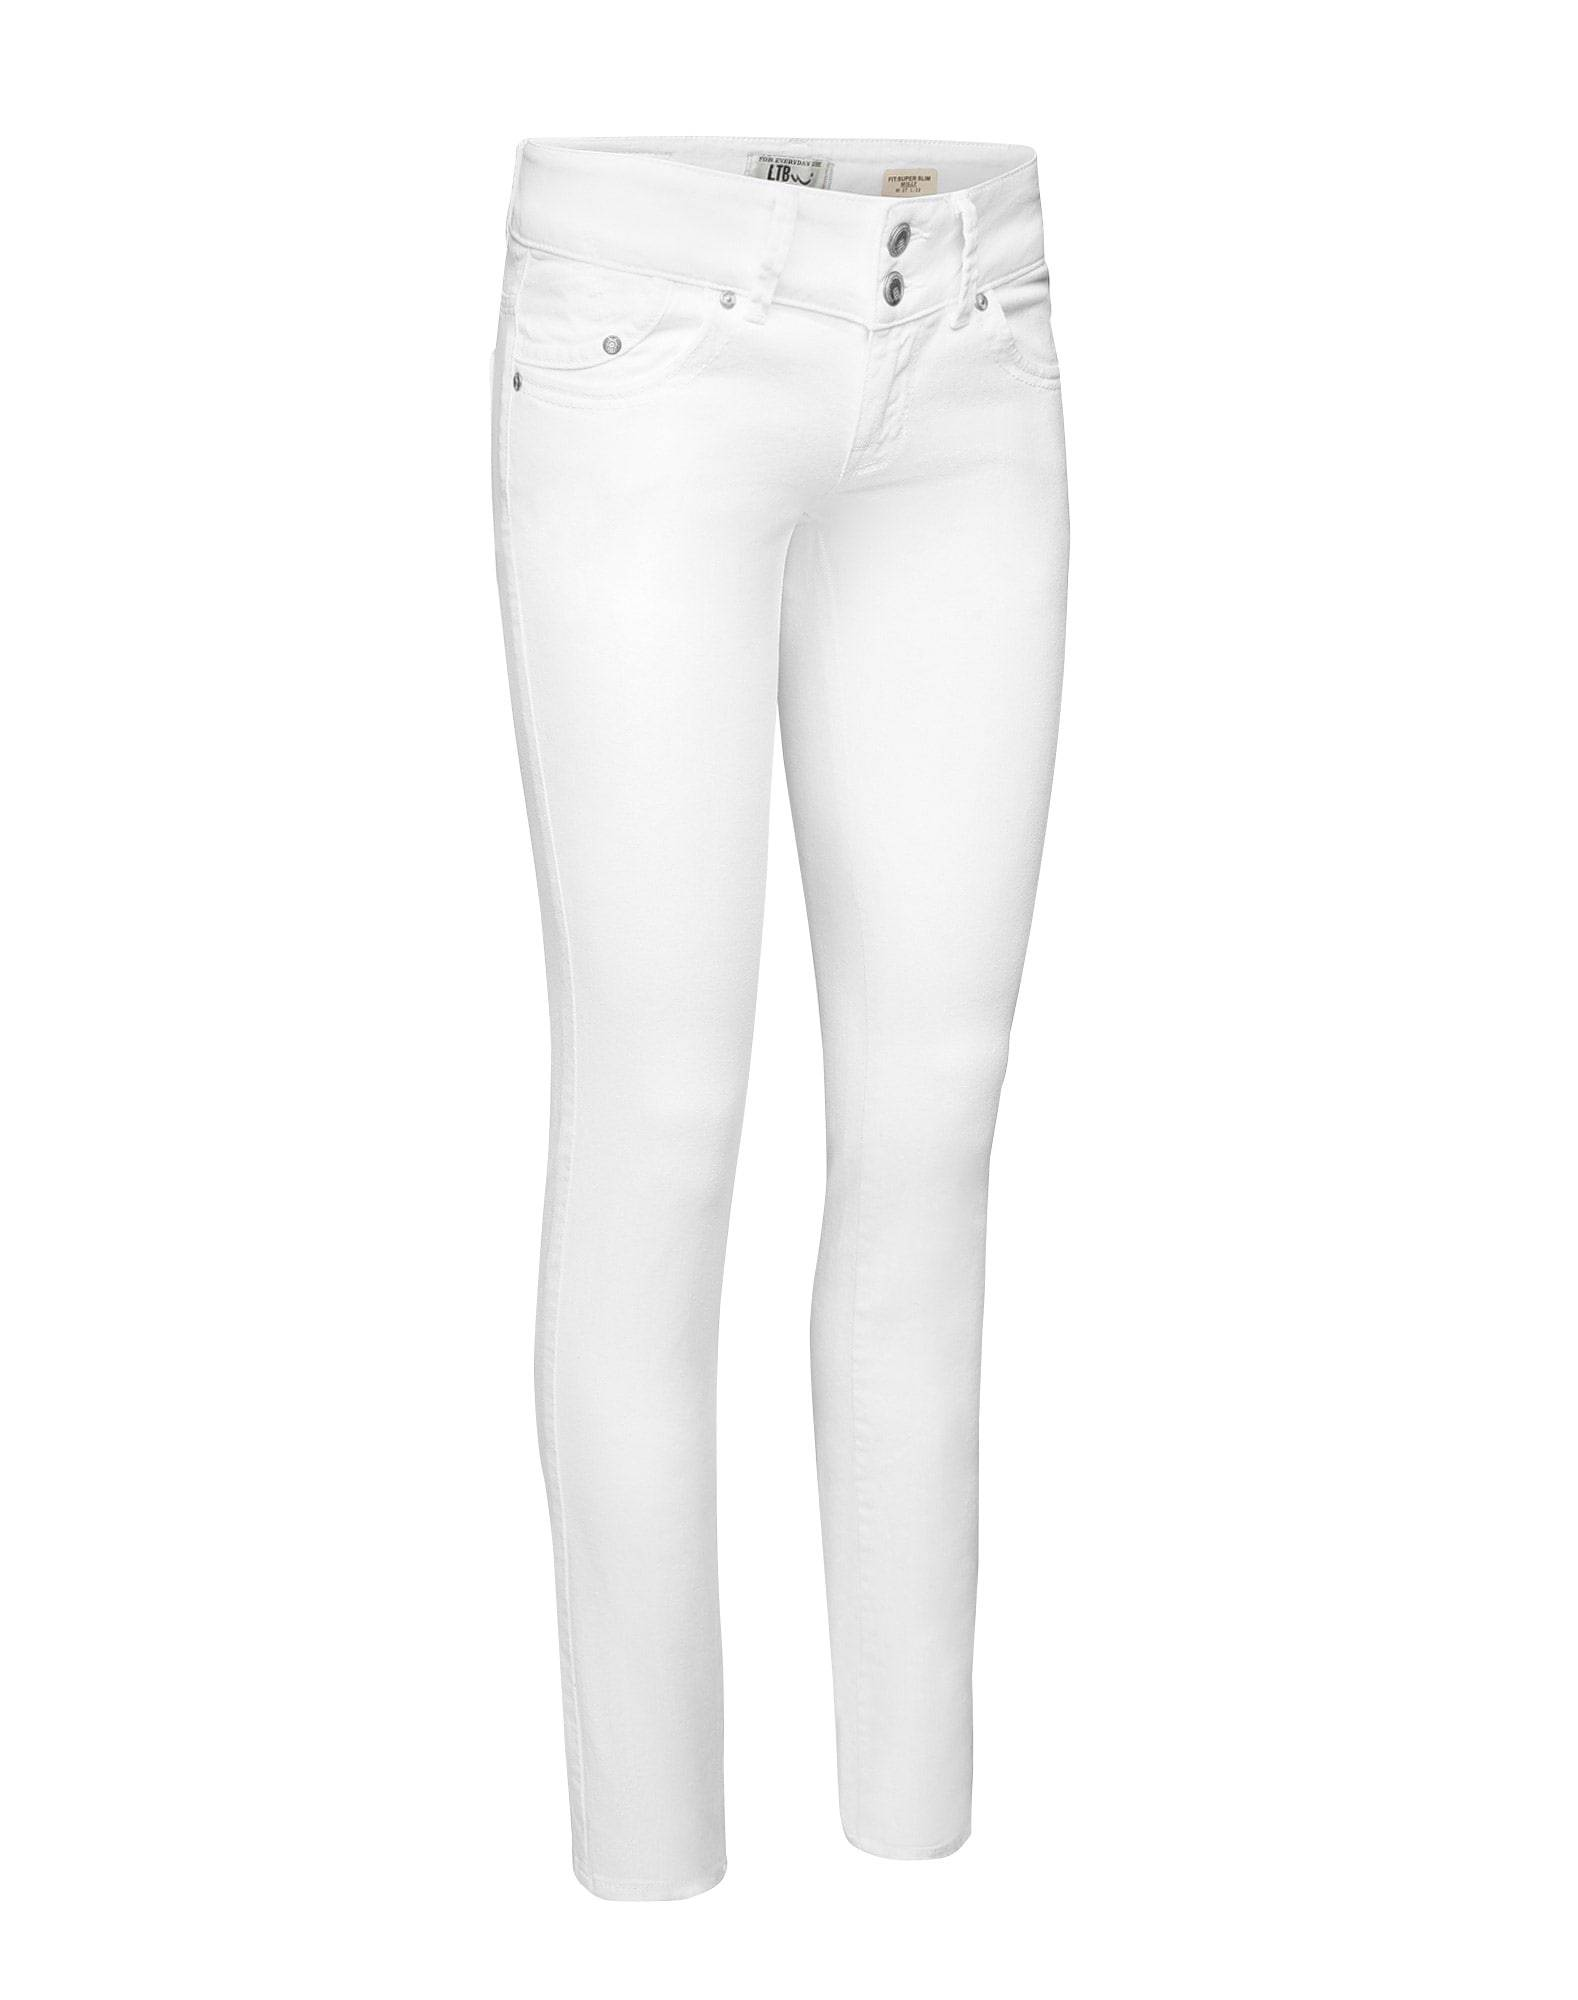 LTB Jean 'Molly'  - Blanc - Taille: 34 - female